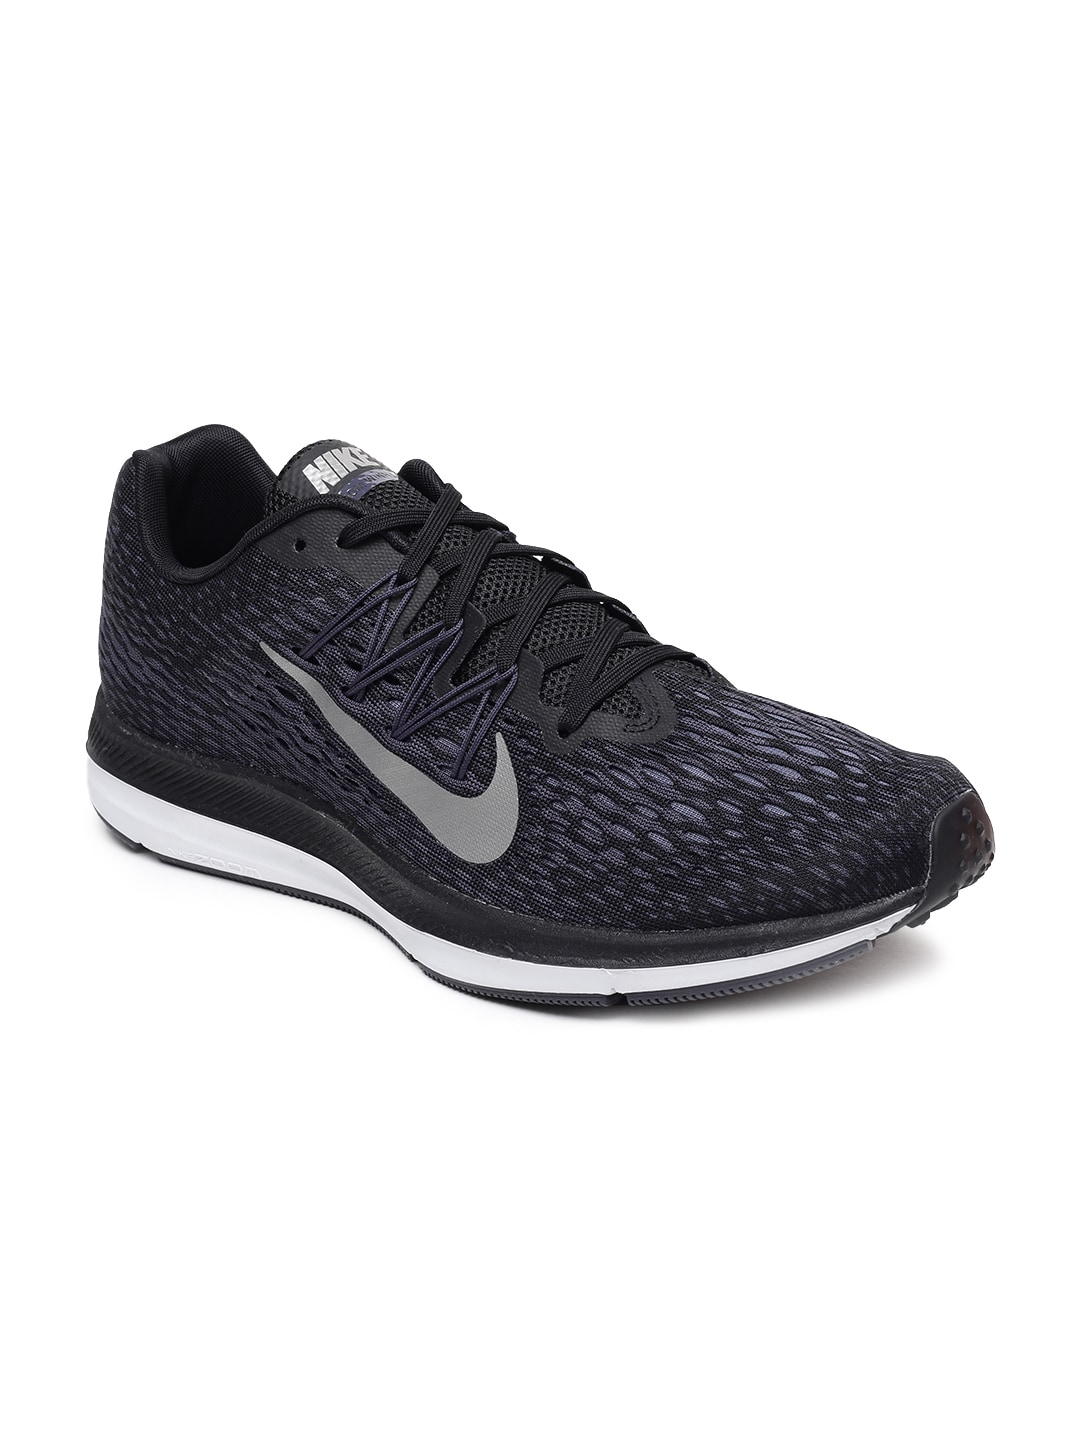 quality design d9d23 f2bd7 Nike Sport Shoe - Buy Nike Sport Shoes At Best Price Online   Myntra